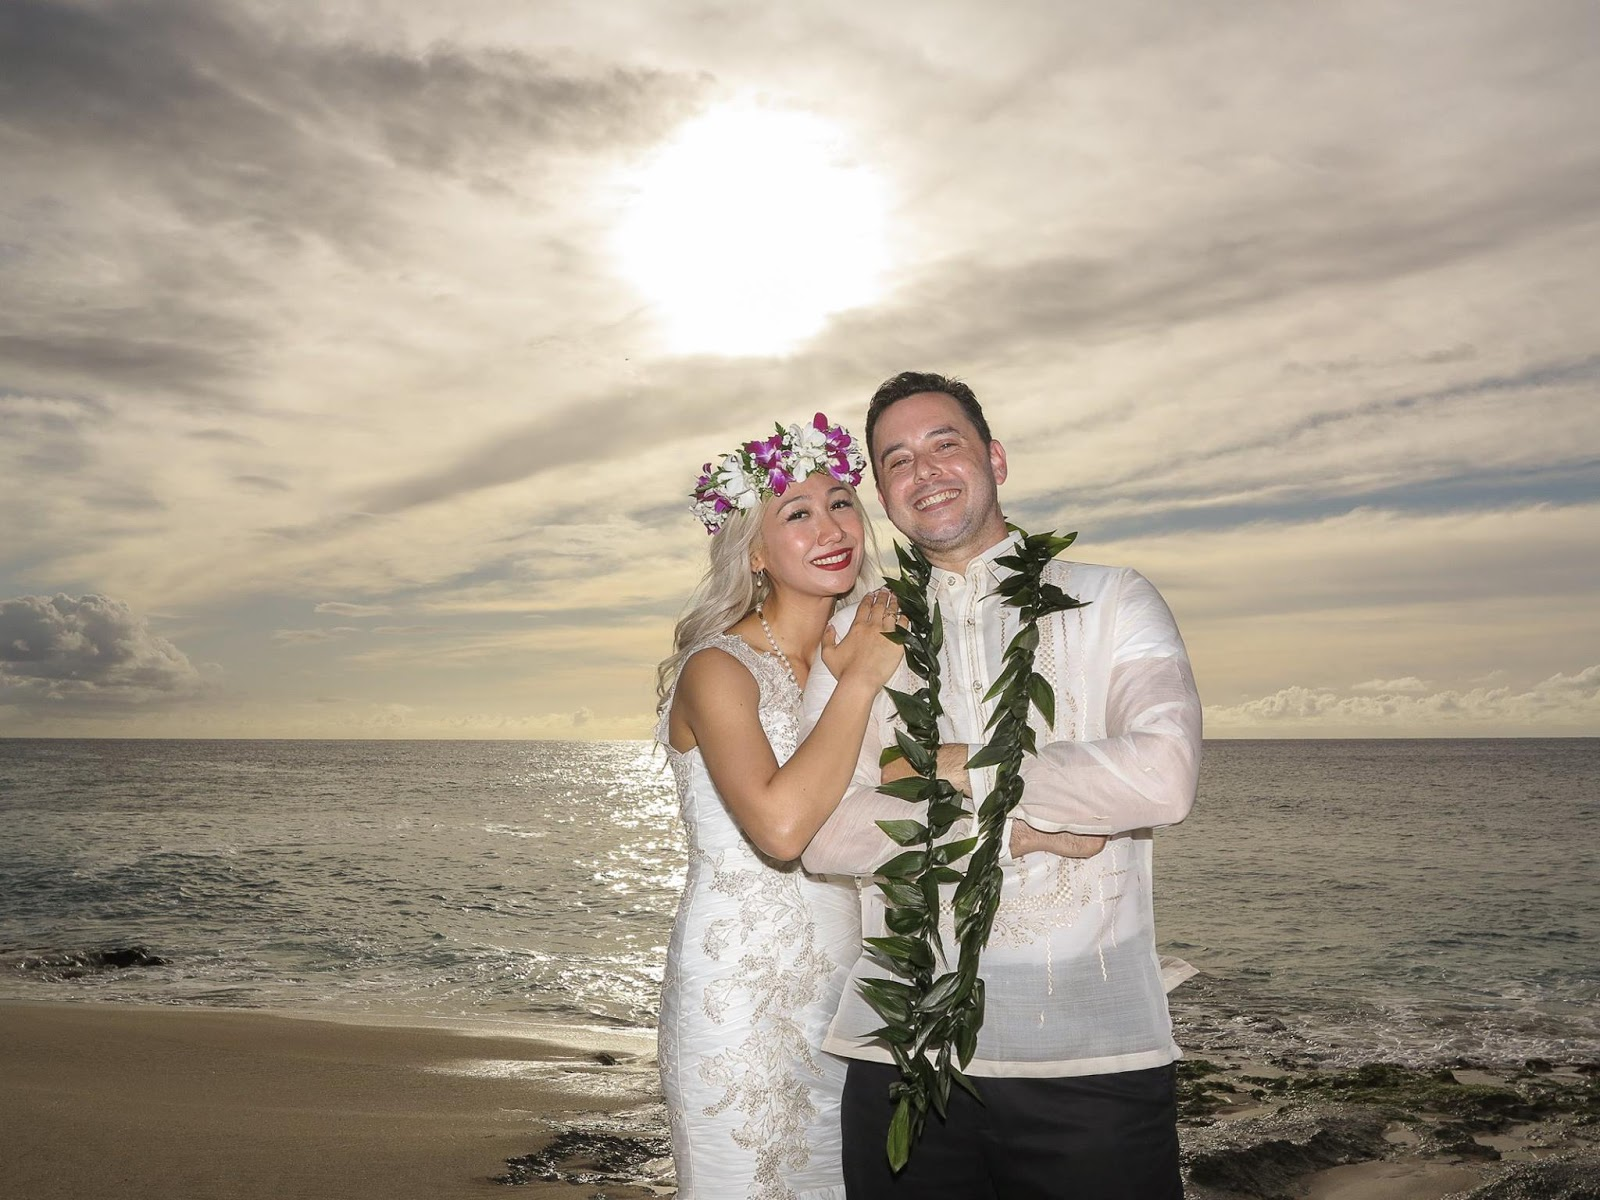 Planning Hawaiian Weddings With Year Round Gorgeous Weather World Class Beaches And Towering Mountains The Mood Excitement Comes From Exploring